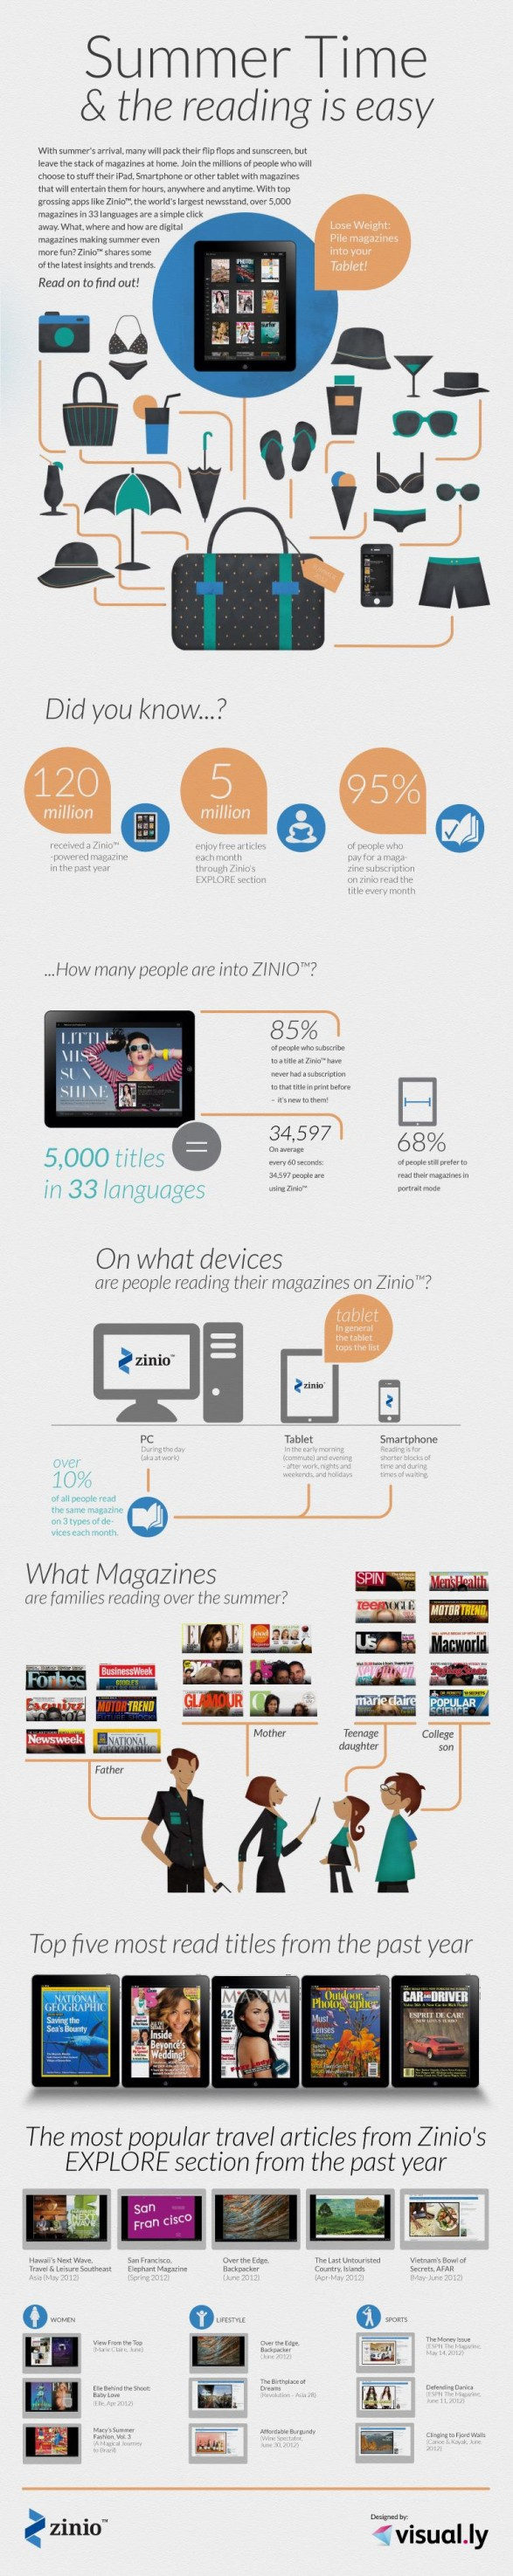 Infographic By Ernesto Olivares For Zinio Summertime The Reading Is Easy Infographic Digital Magazine Writing Tips